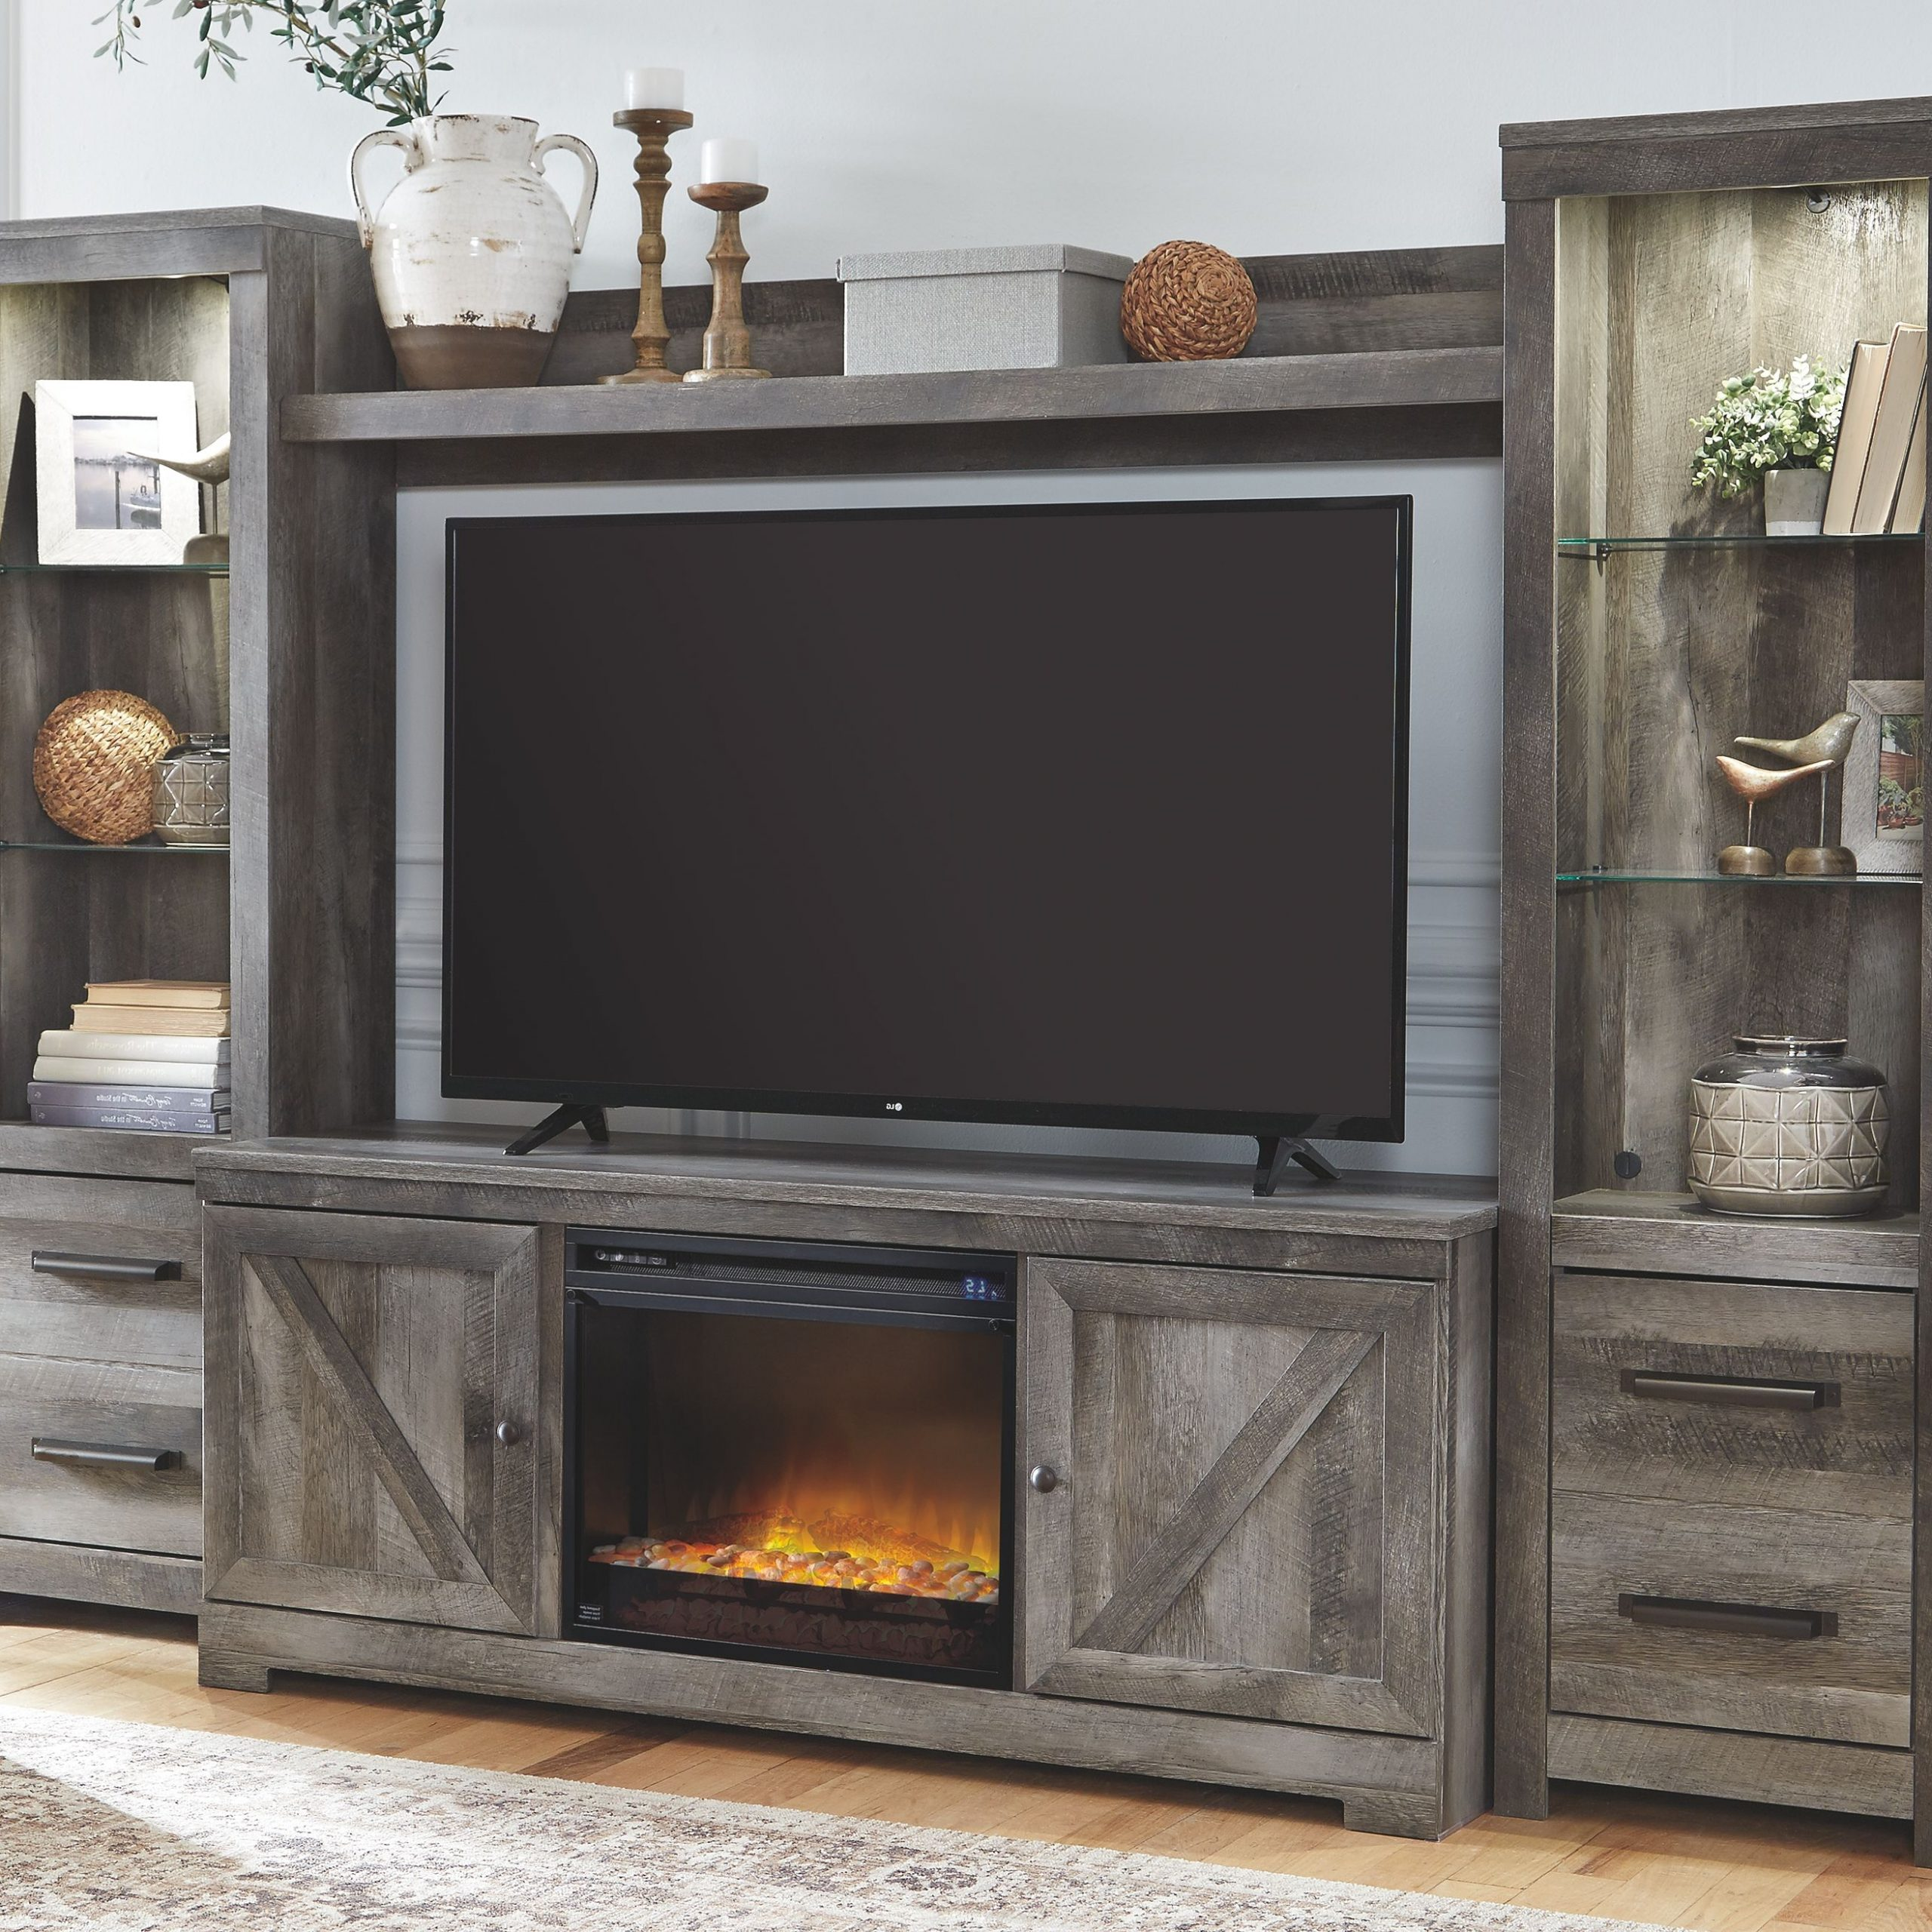 Wynnlow 4 Piece Entertainment Center With Fireplace, Gray Throughout Tv Stands In Rustic Gray Wash Entertainment Center For Living Room (View 15 of 20)